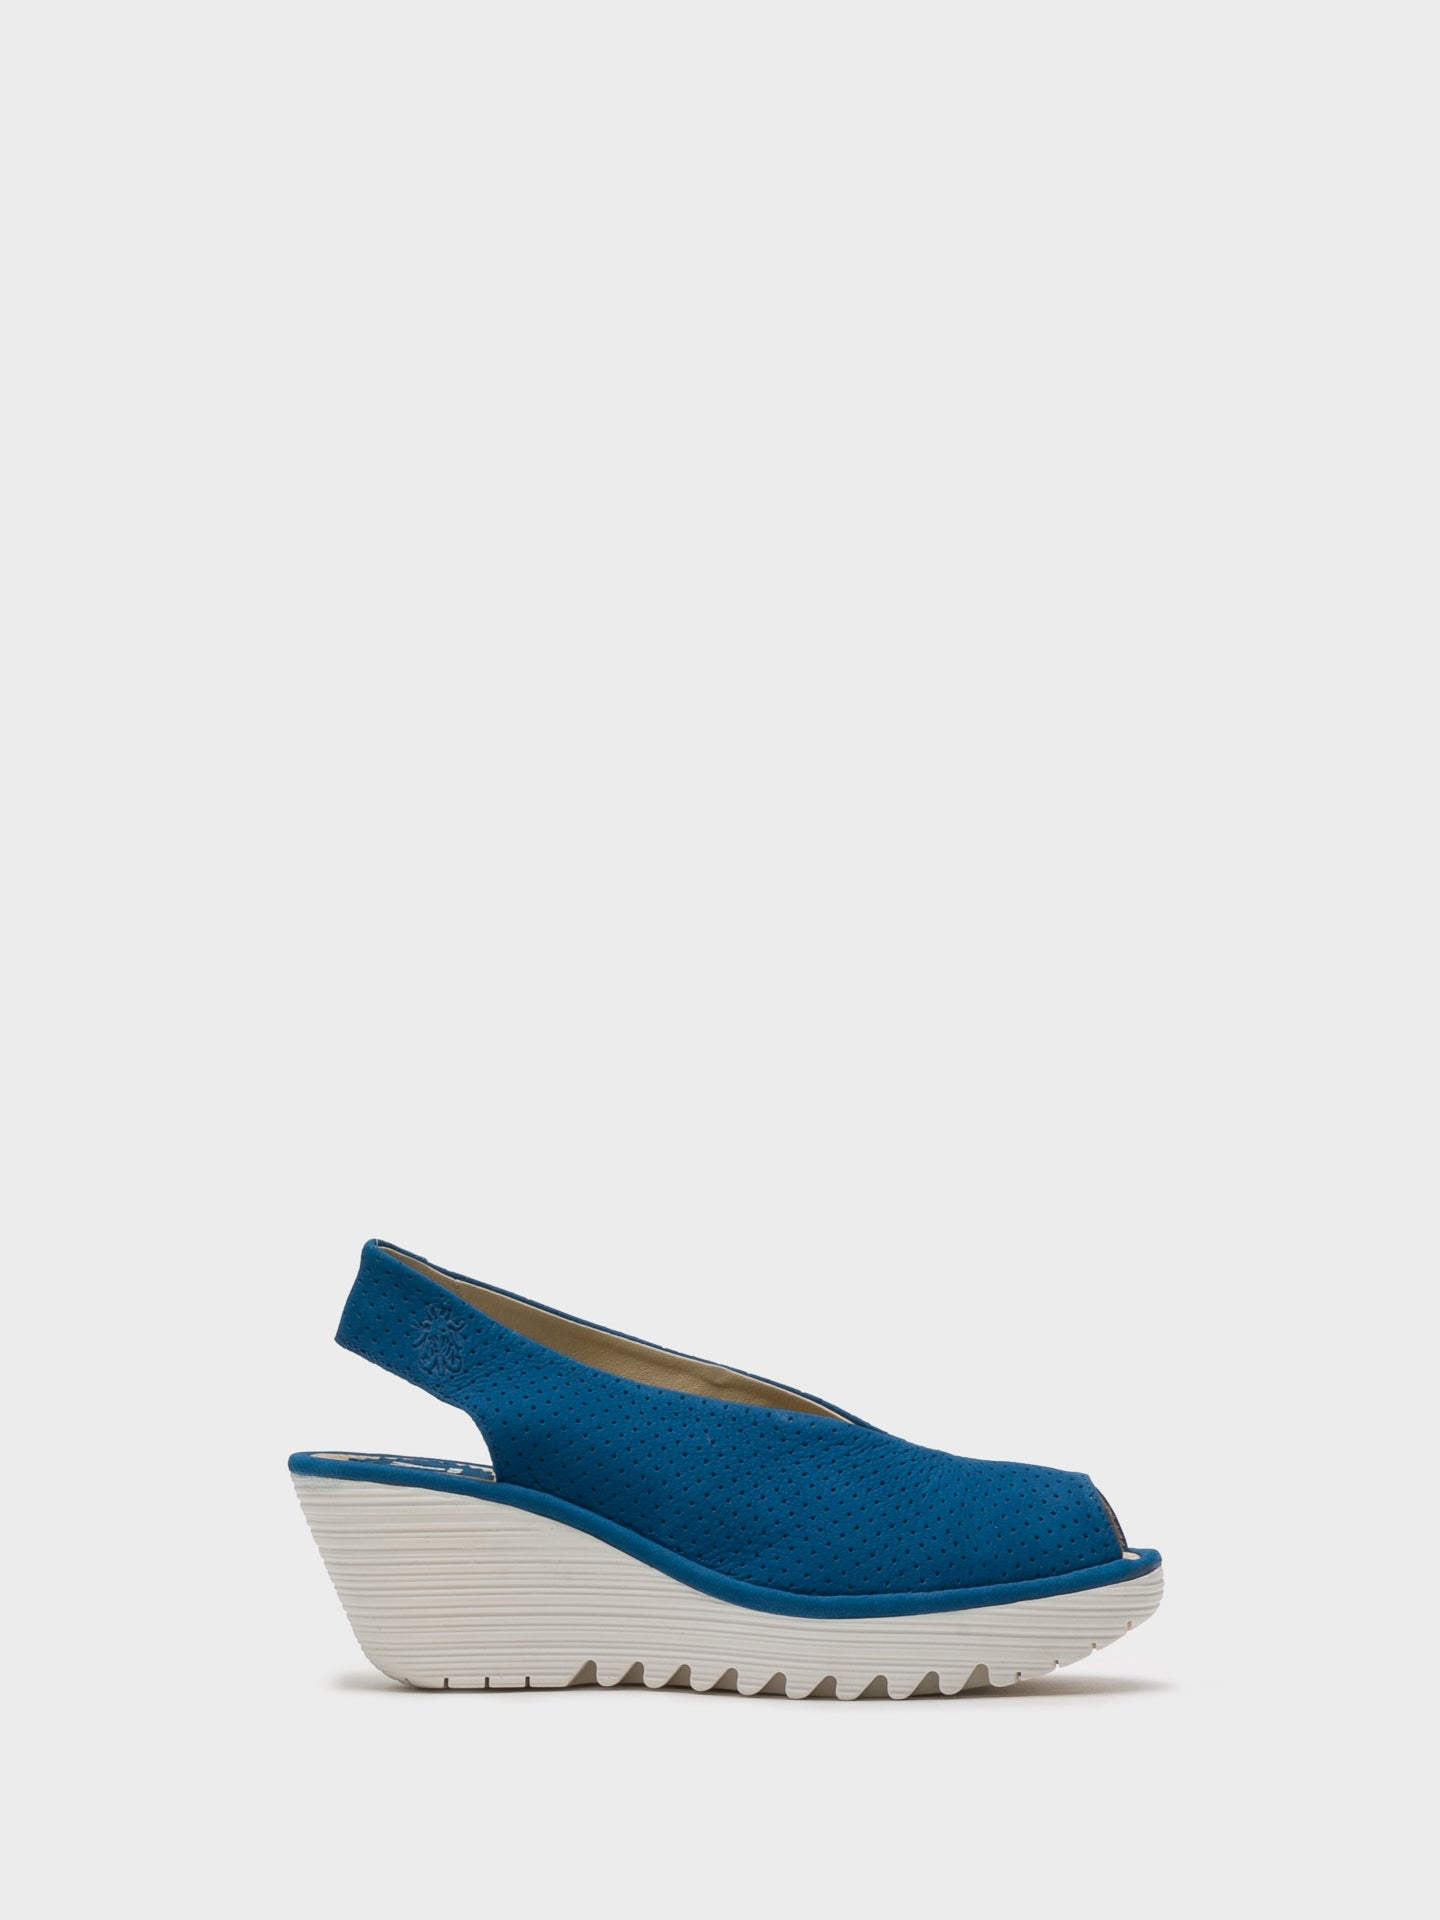 Fly London SteelBlue Sling-Back Sandals